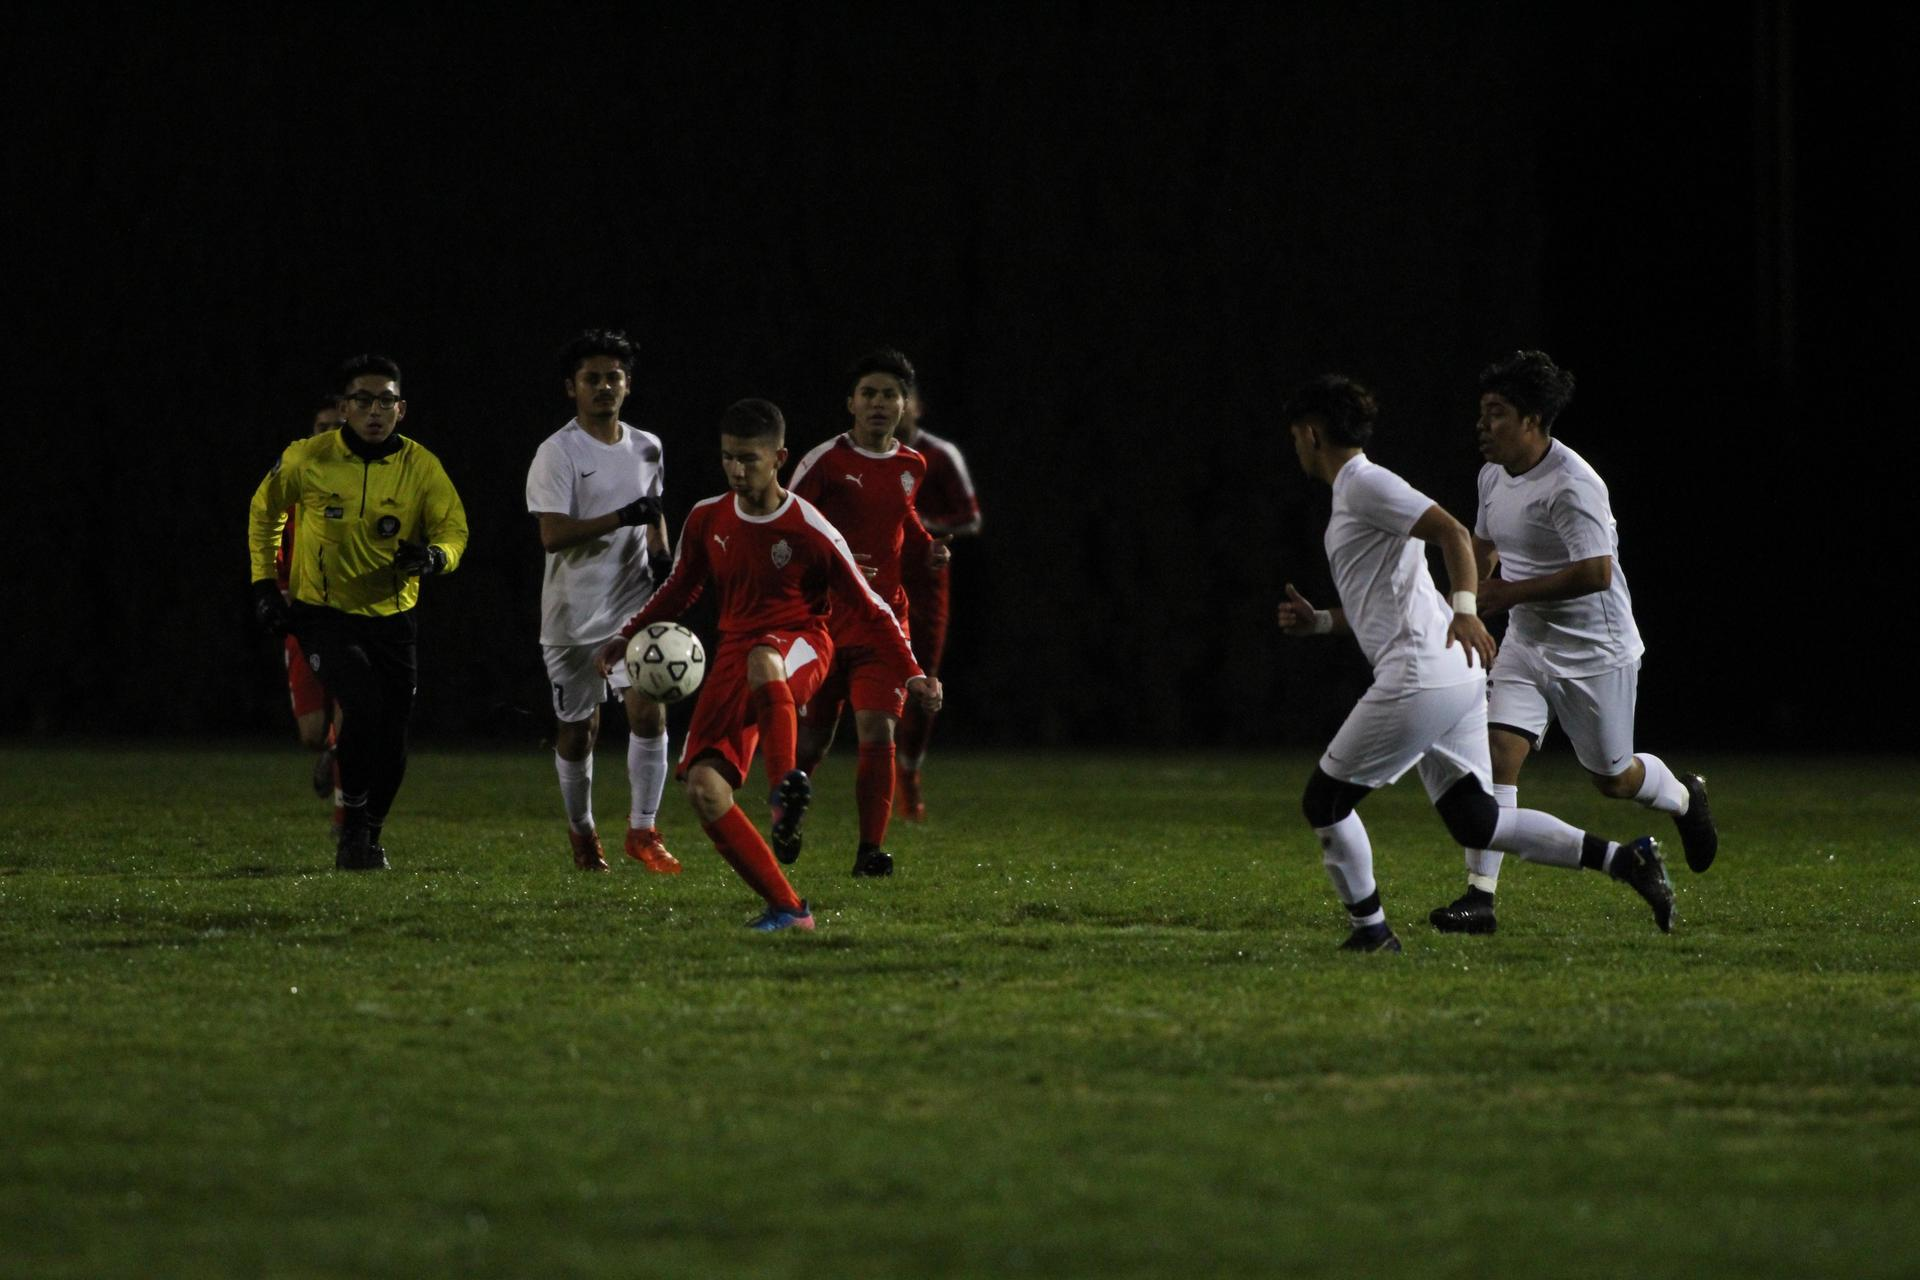 Boys playing soccer against Fresno.